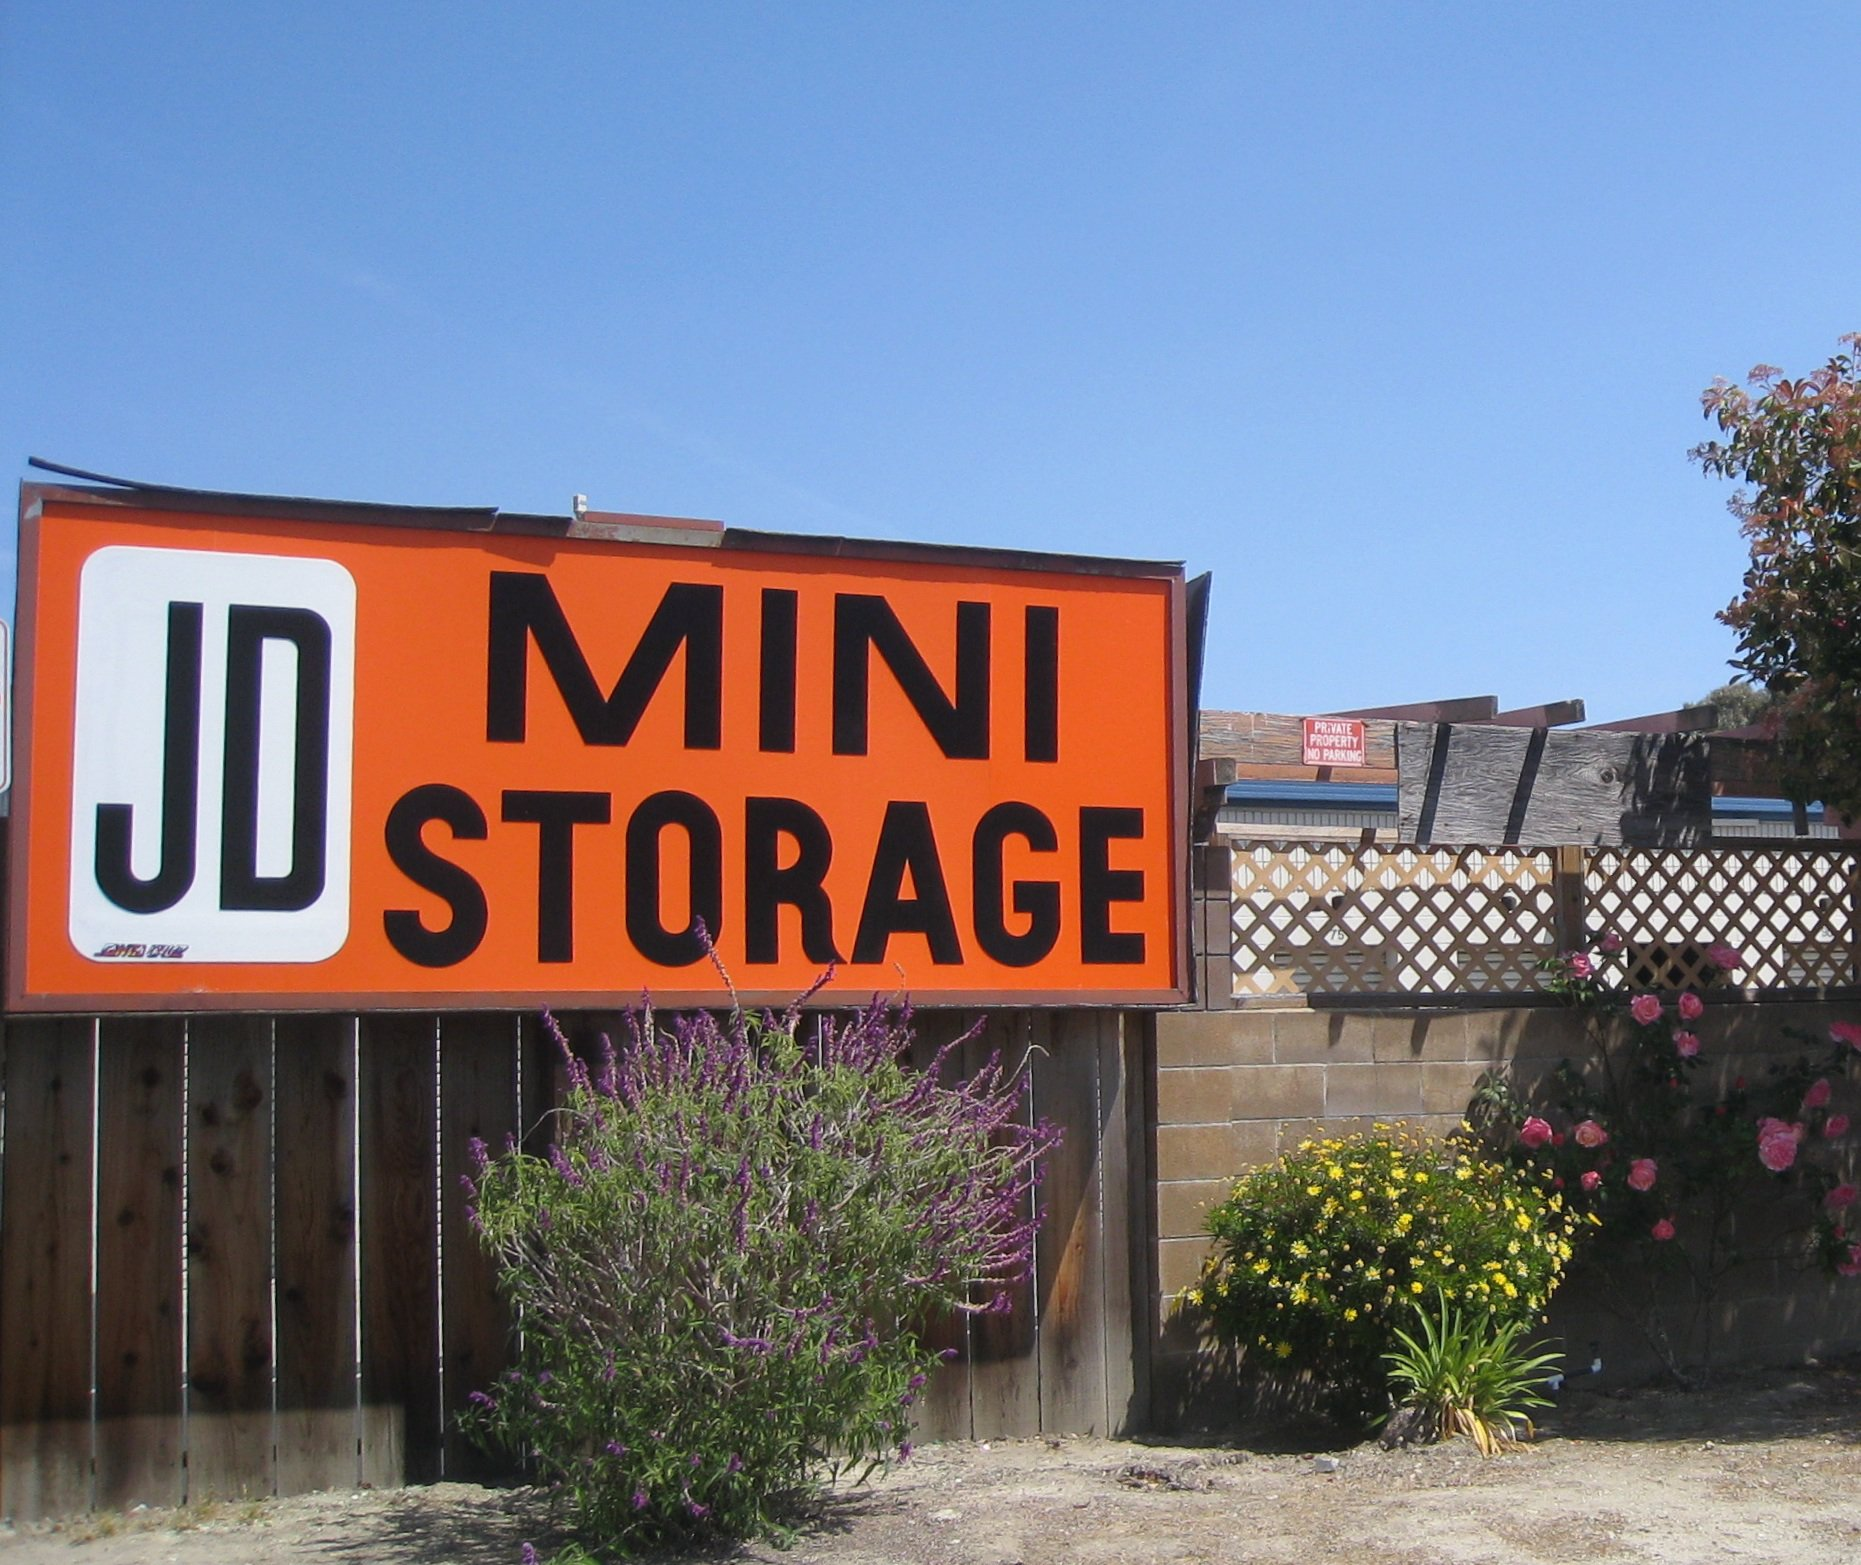 JD Mini Storage in Capitola